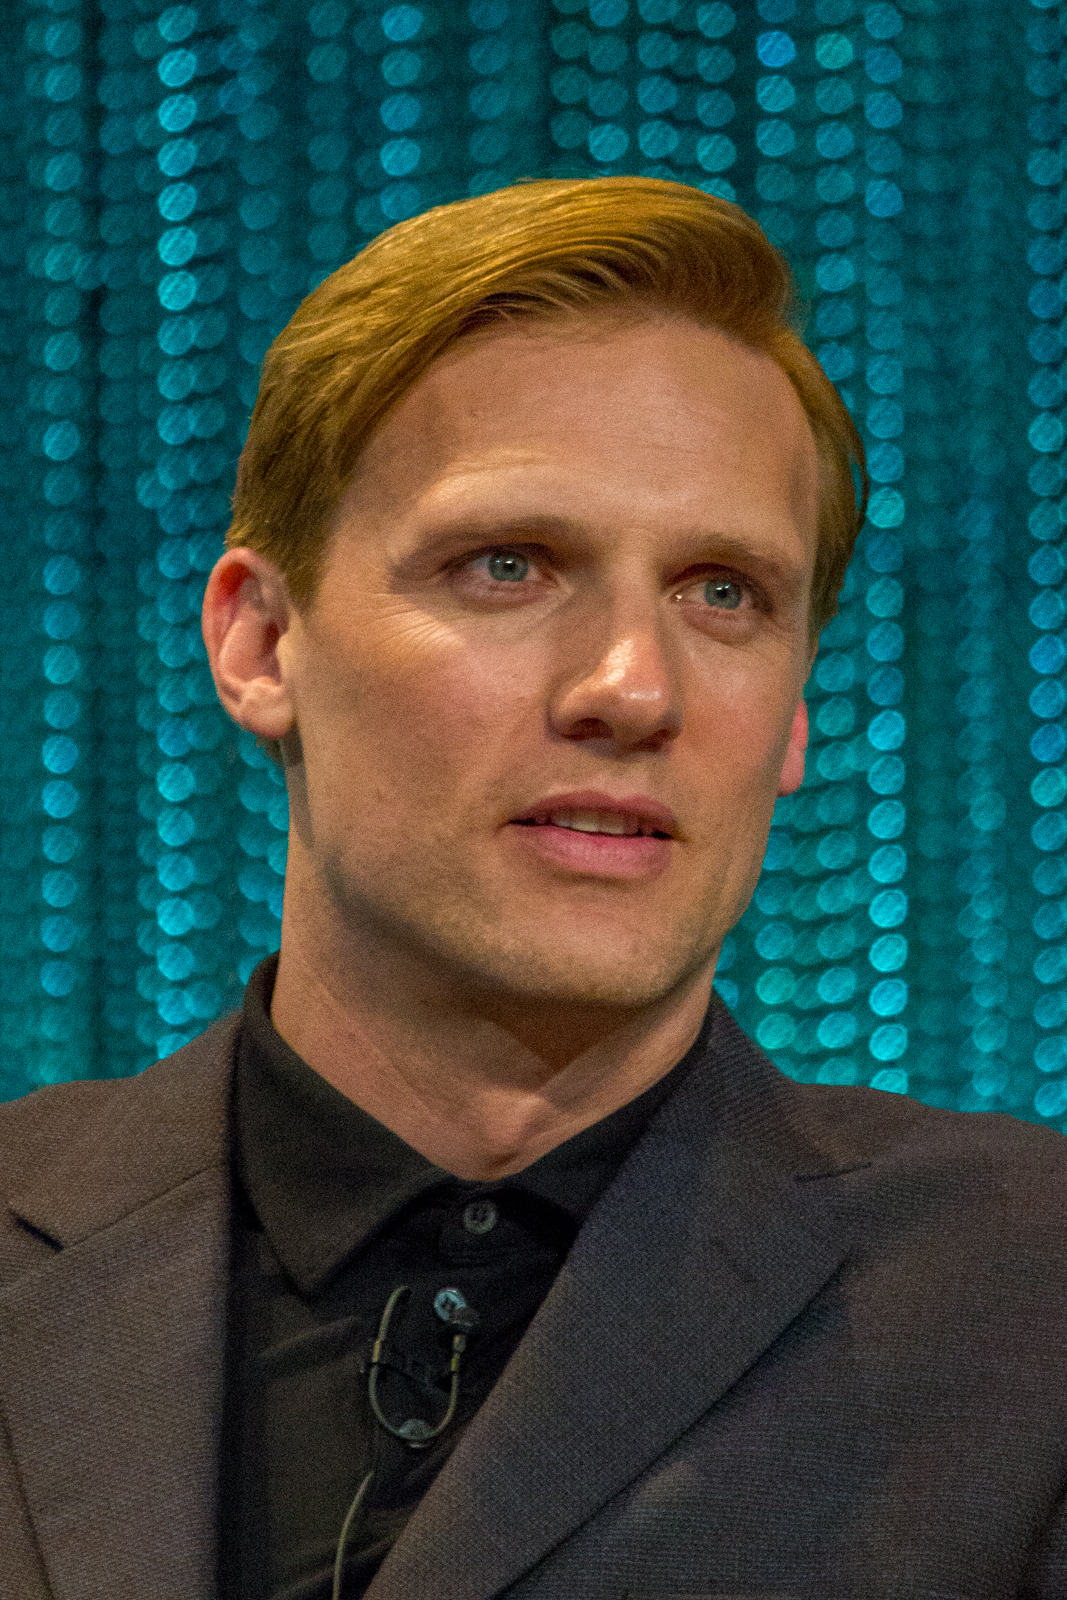 The 41-year old son of father (?) and mother(?) Teddy Sears in 2018 photo. Teddy Sears earned a  million dollar salary - leaving the net worth at 1 million in 2018